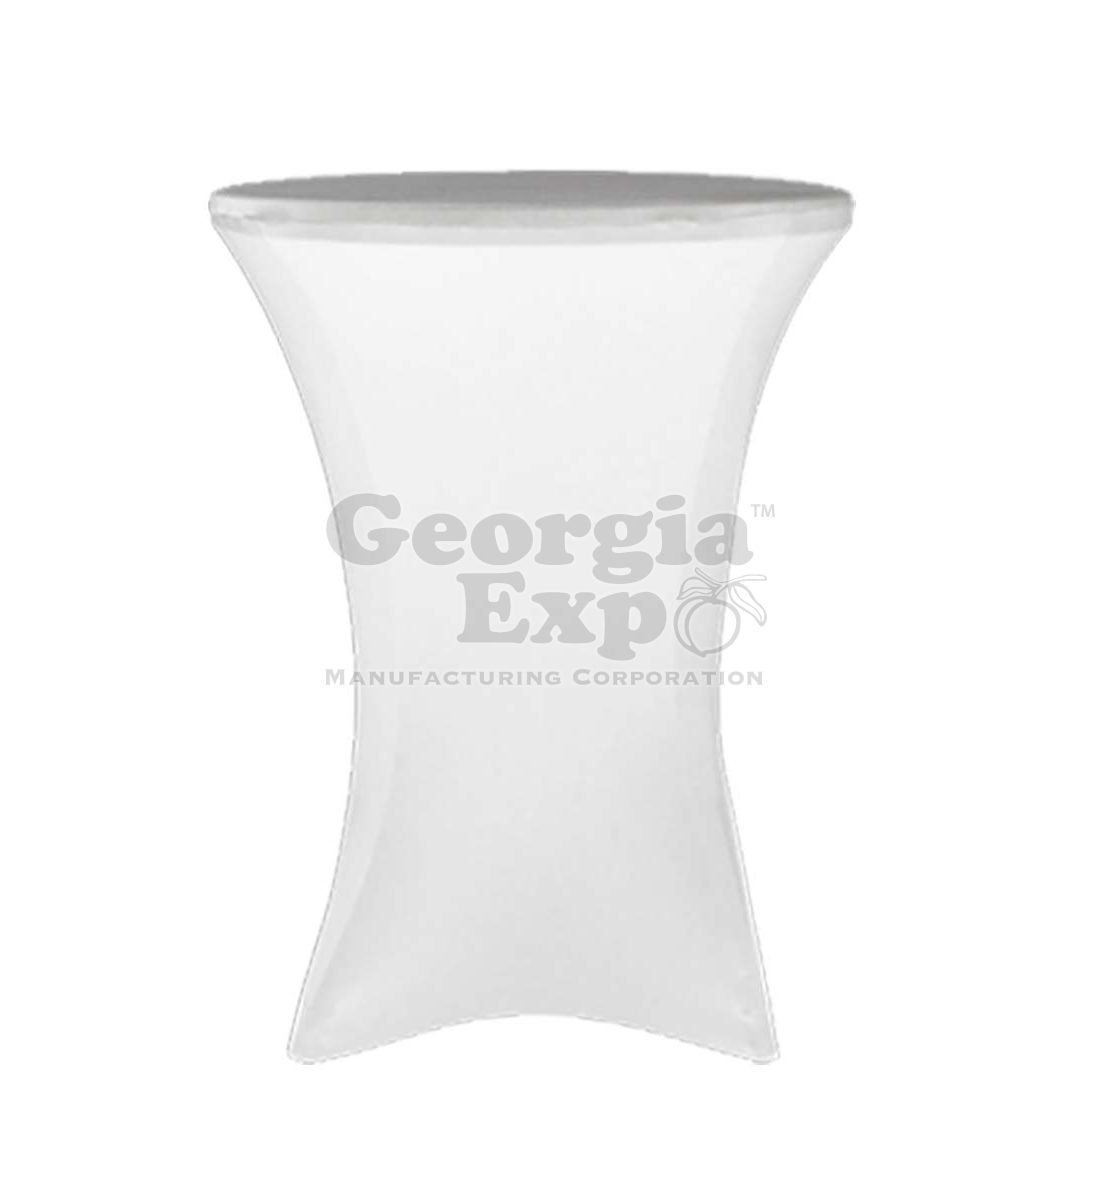 ... White Spandex Cocktail Table Cover ...